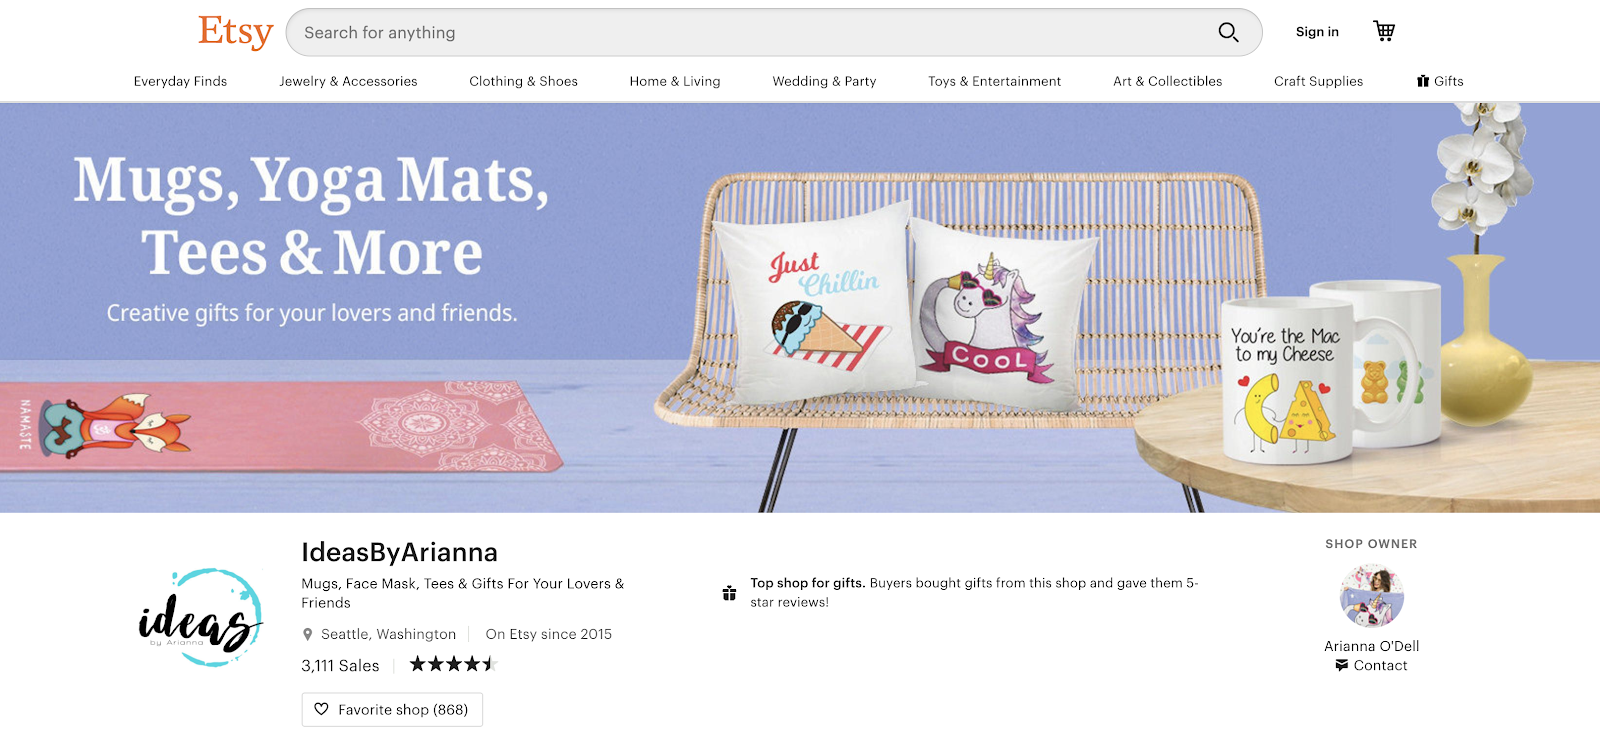 Etsy eCommerce Store Example